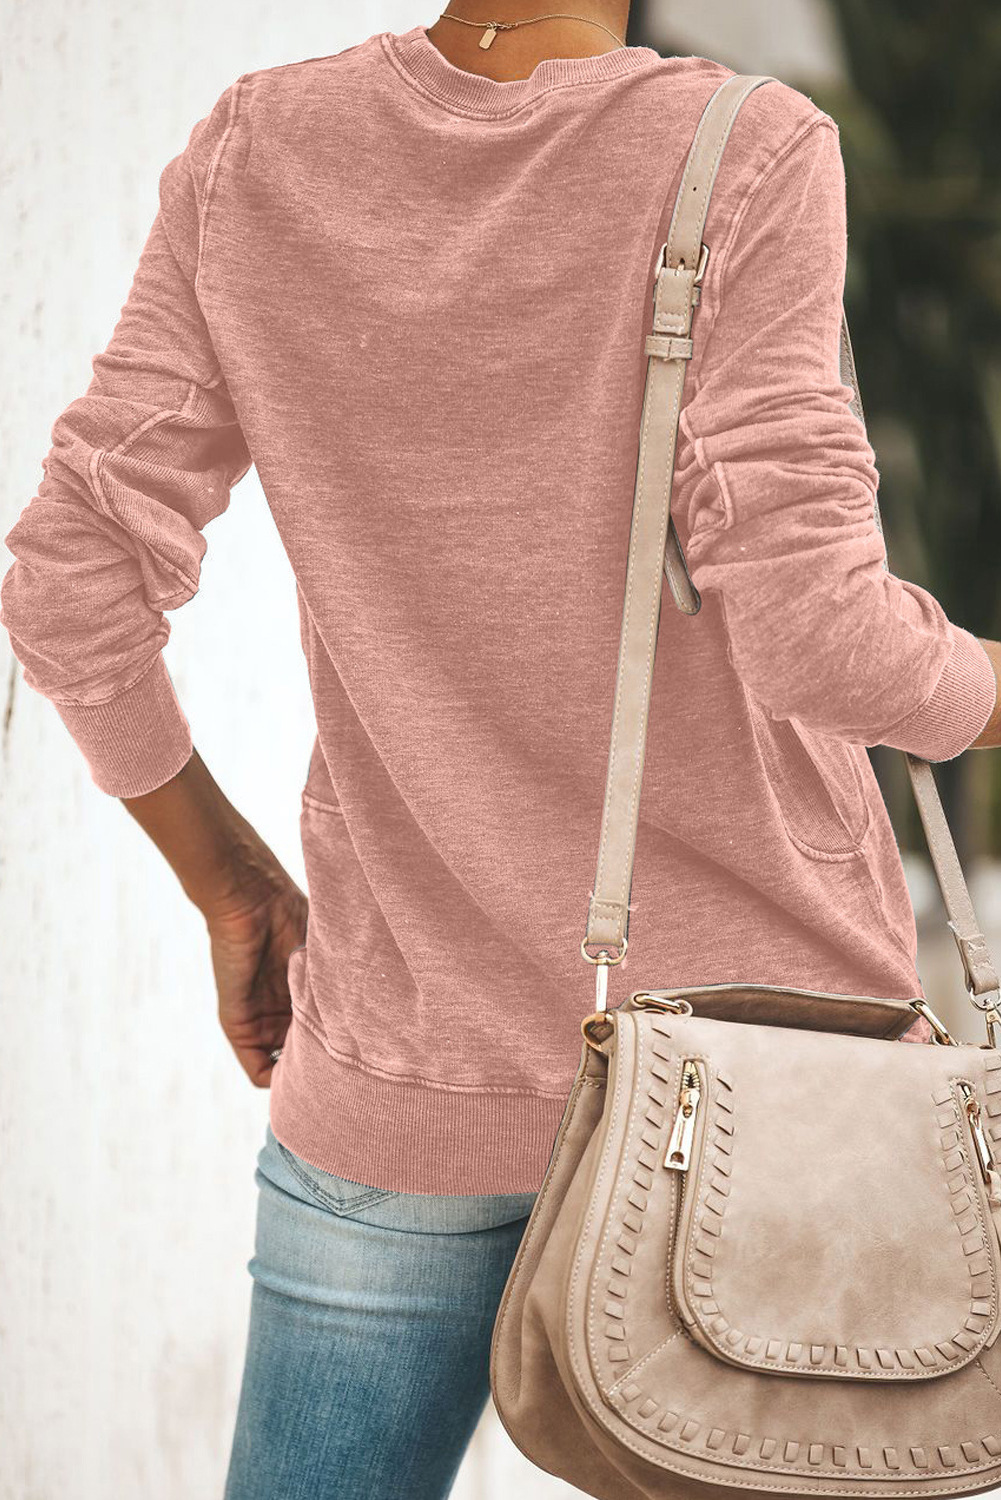 autumn new loose casual cartoon pattern long-sleeved round neck women's sweater NSSI2347